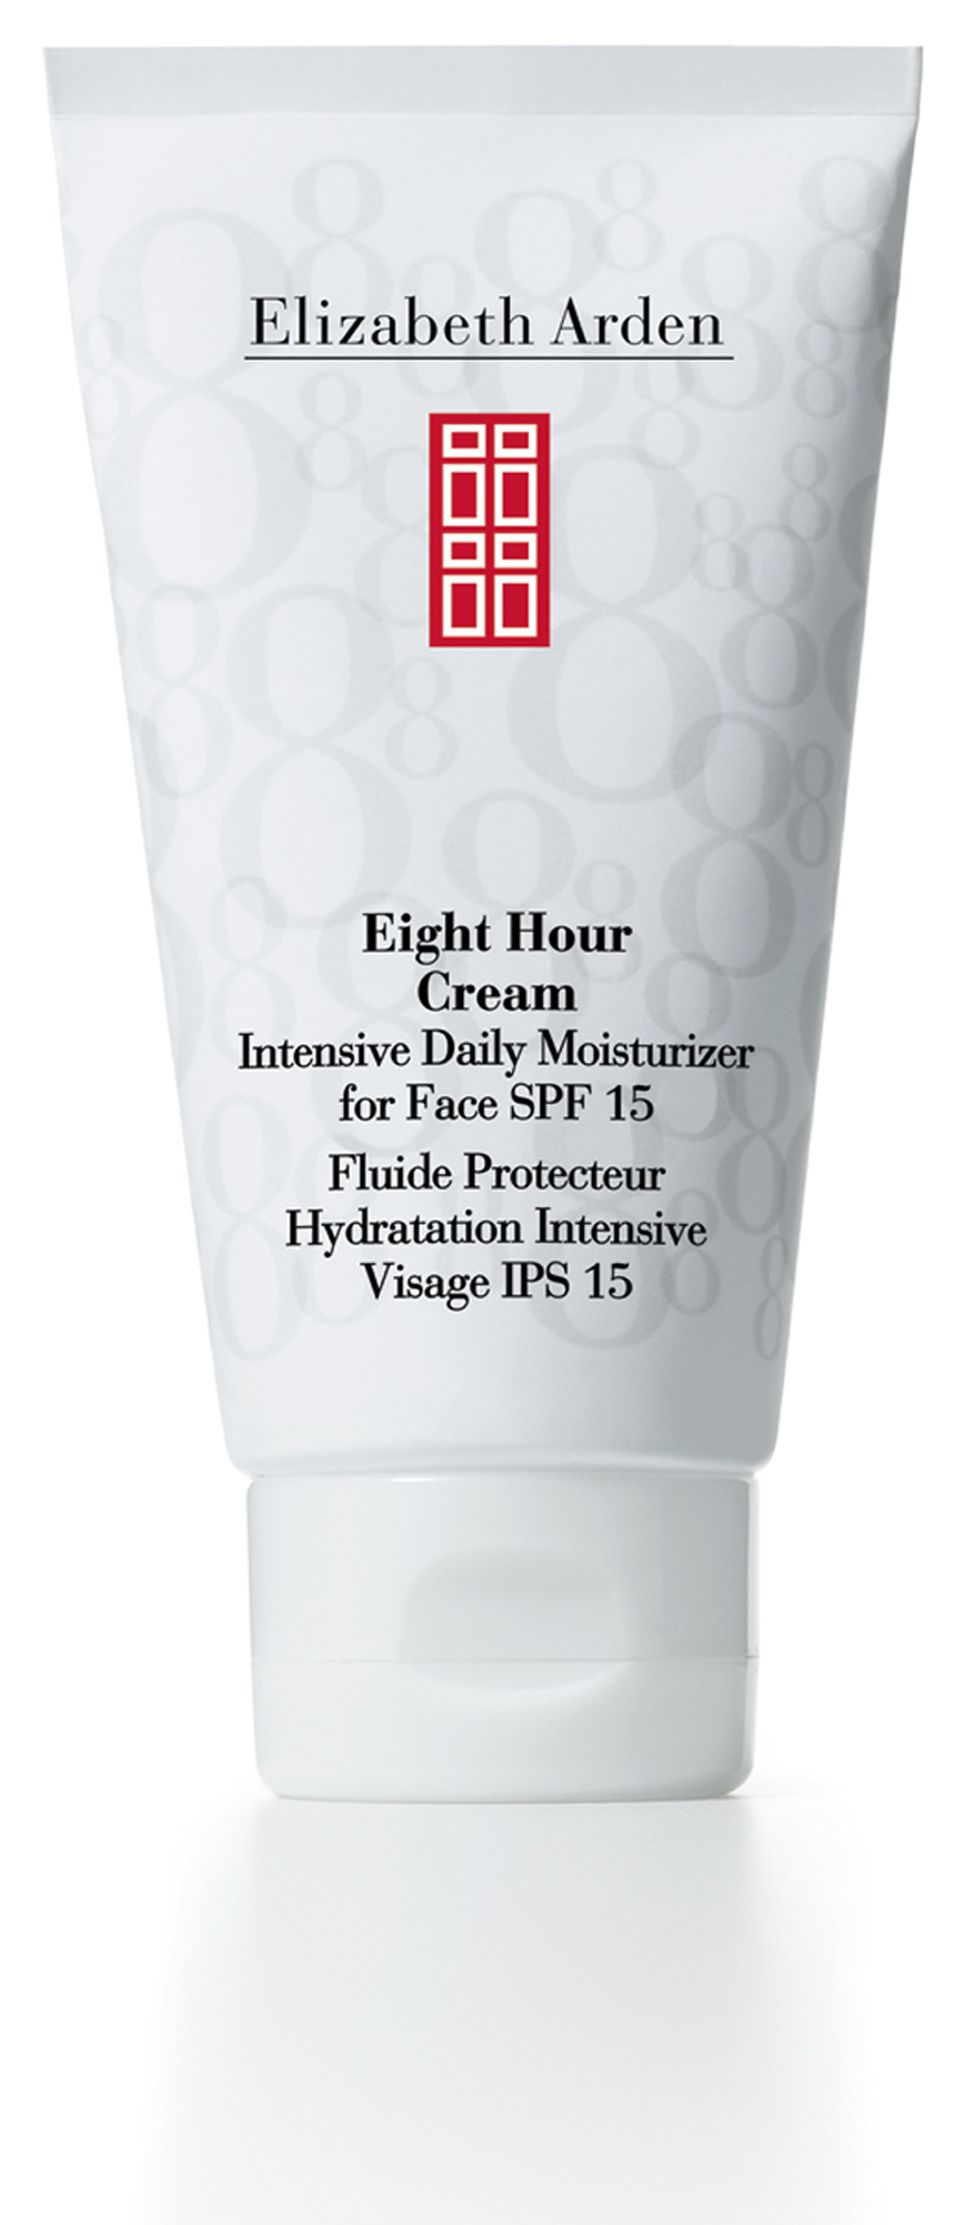 8 Hour Cream Intensive Daily Moisturizer for Face